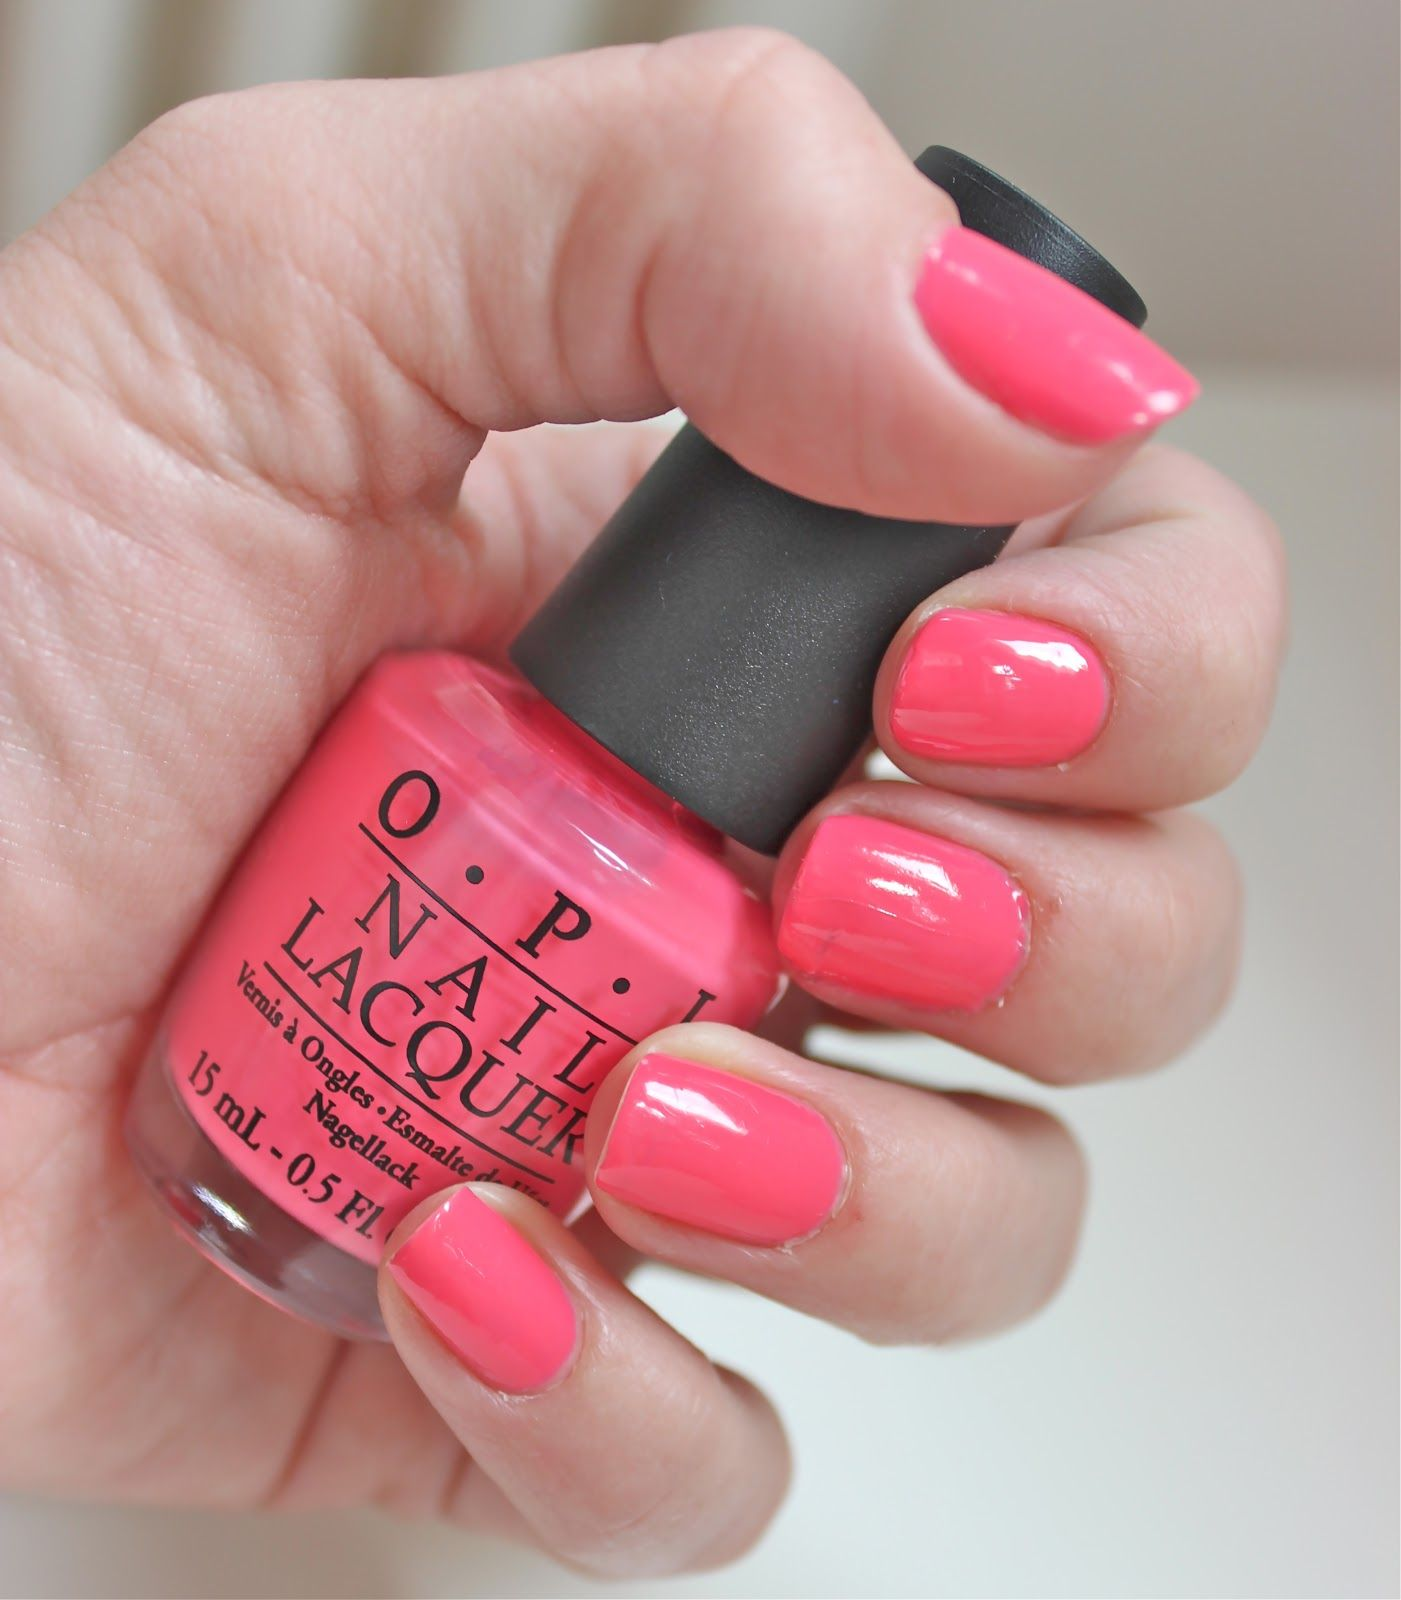 Lacquer on nails new trend instantly attracted nails pinterest opi makeup and hair makeup - Diva nails and beauty ...